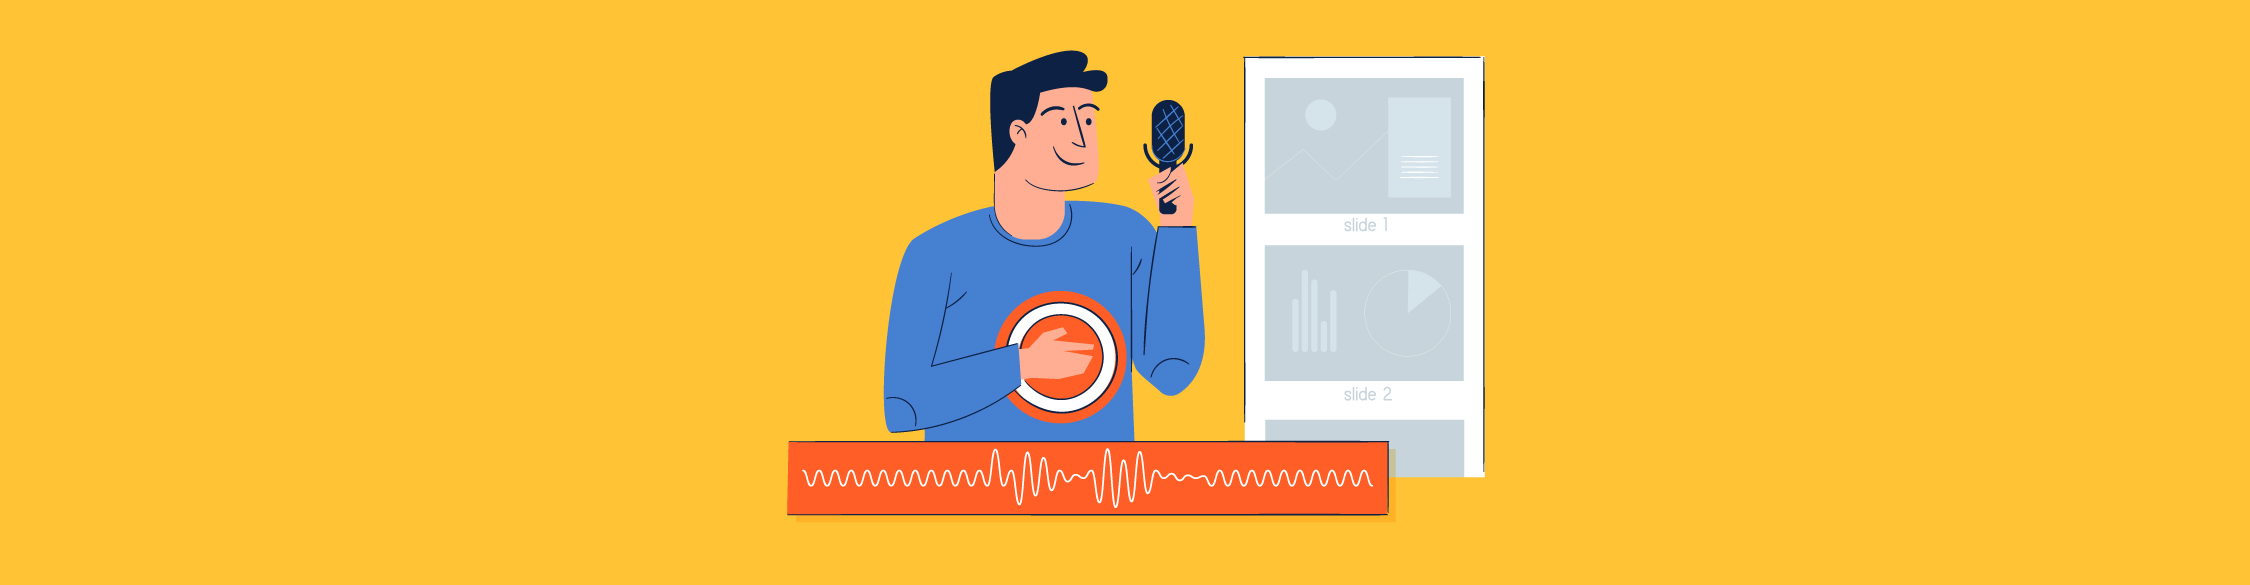 How to Create a Narrated Presentation With Voice Over Using Visme